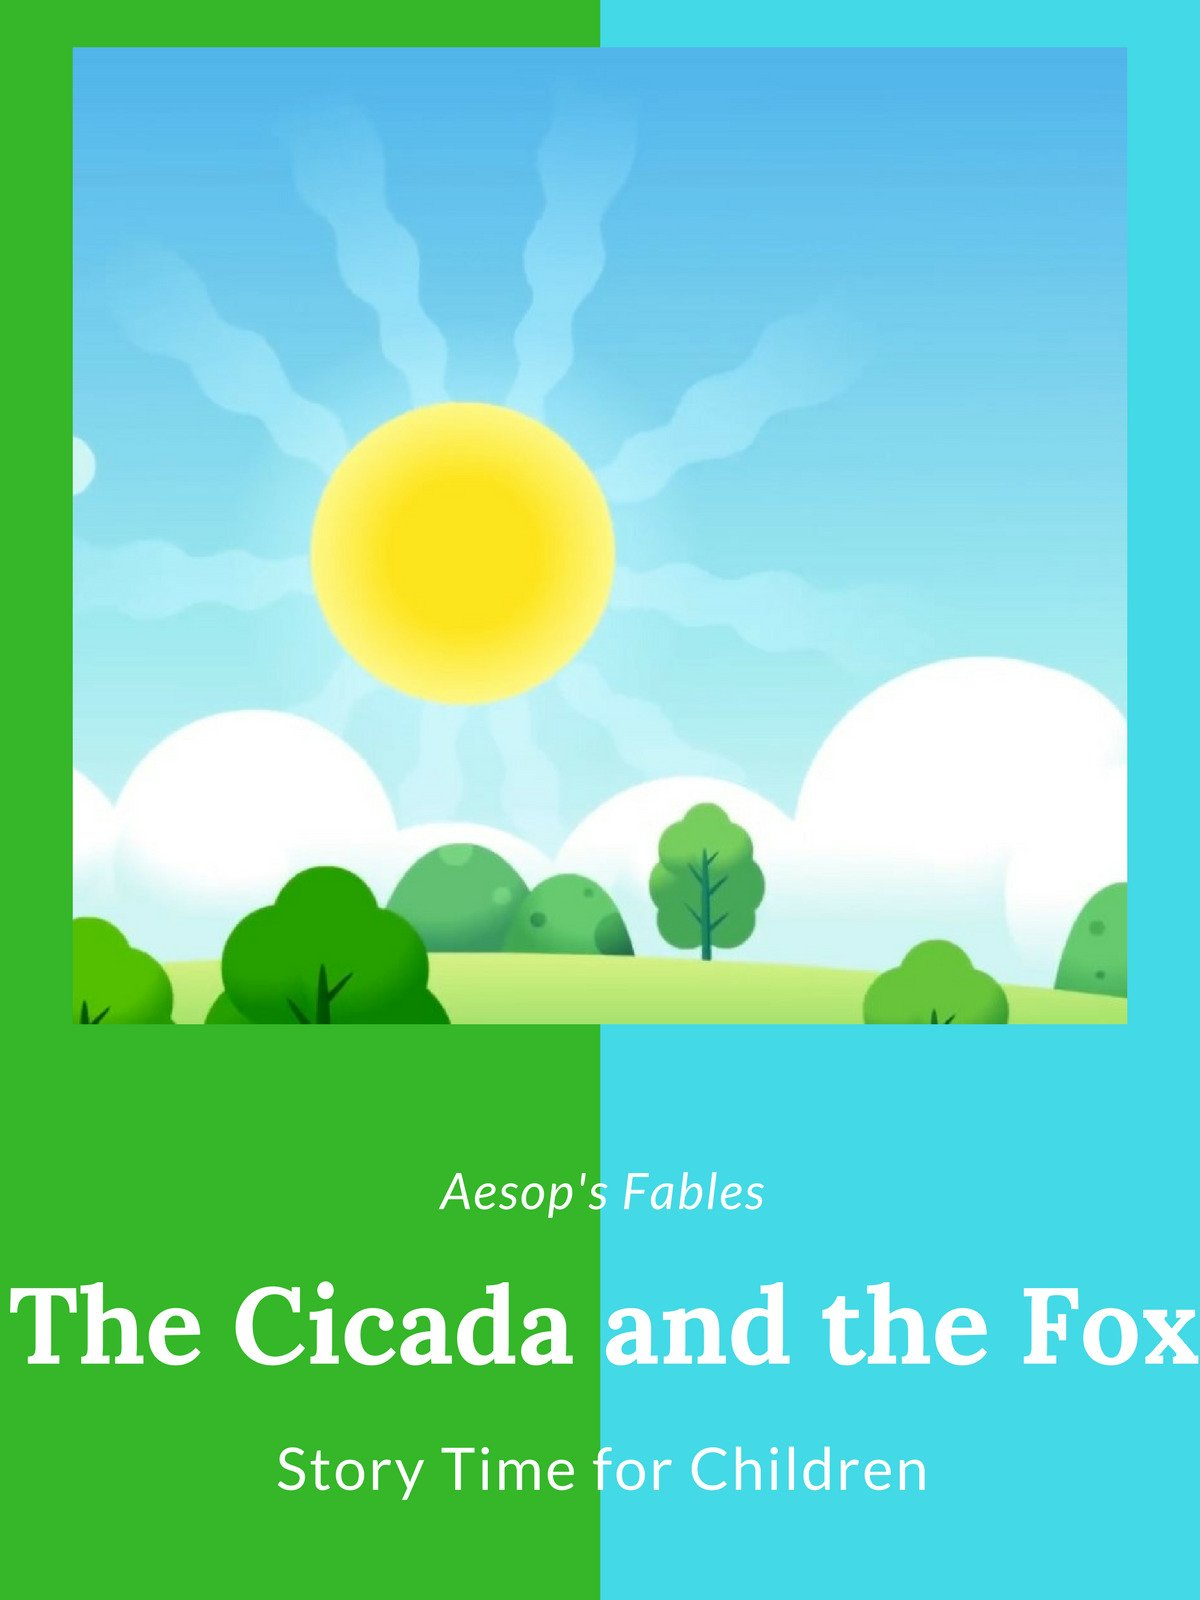 The Cicada and the Fox